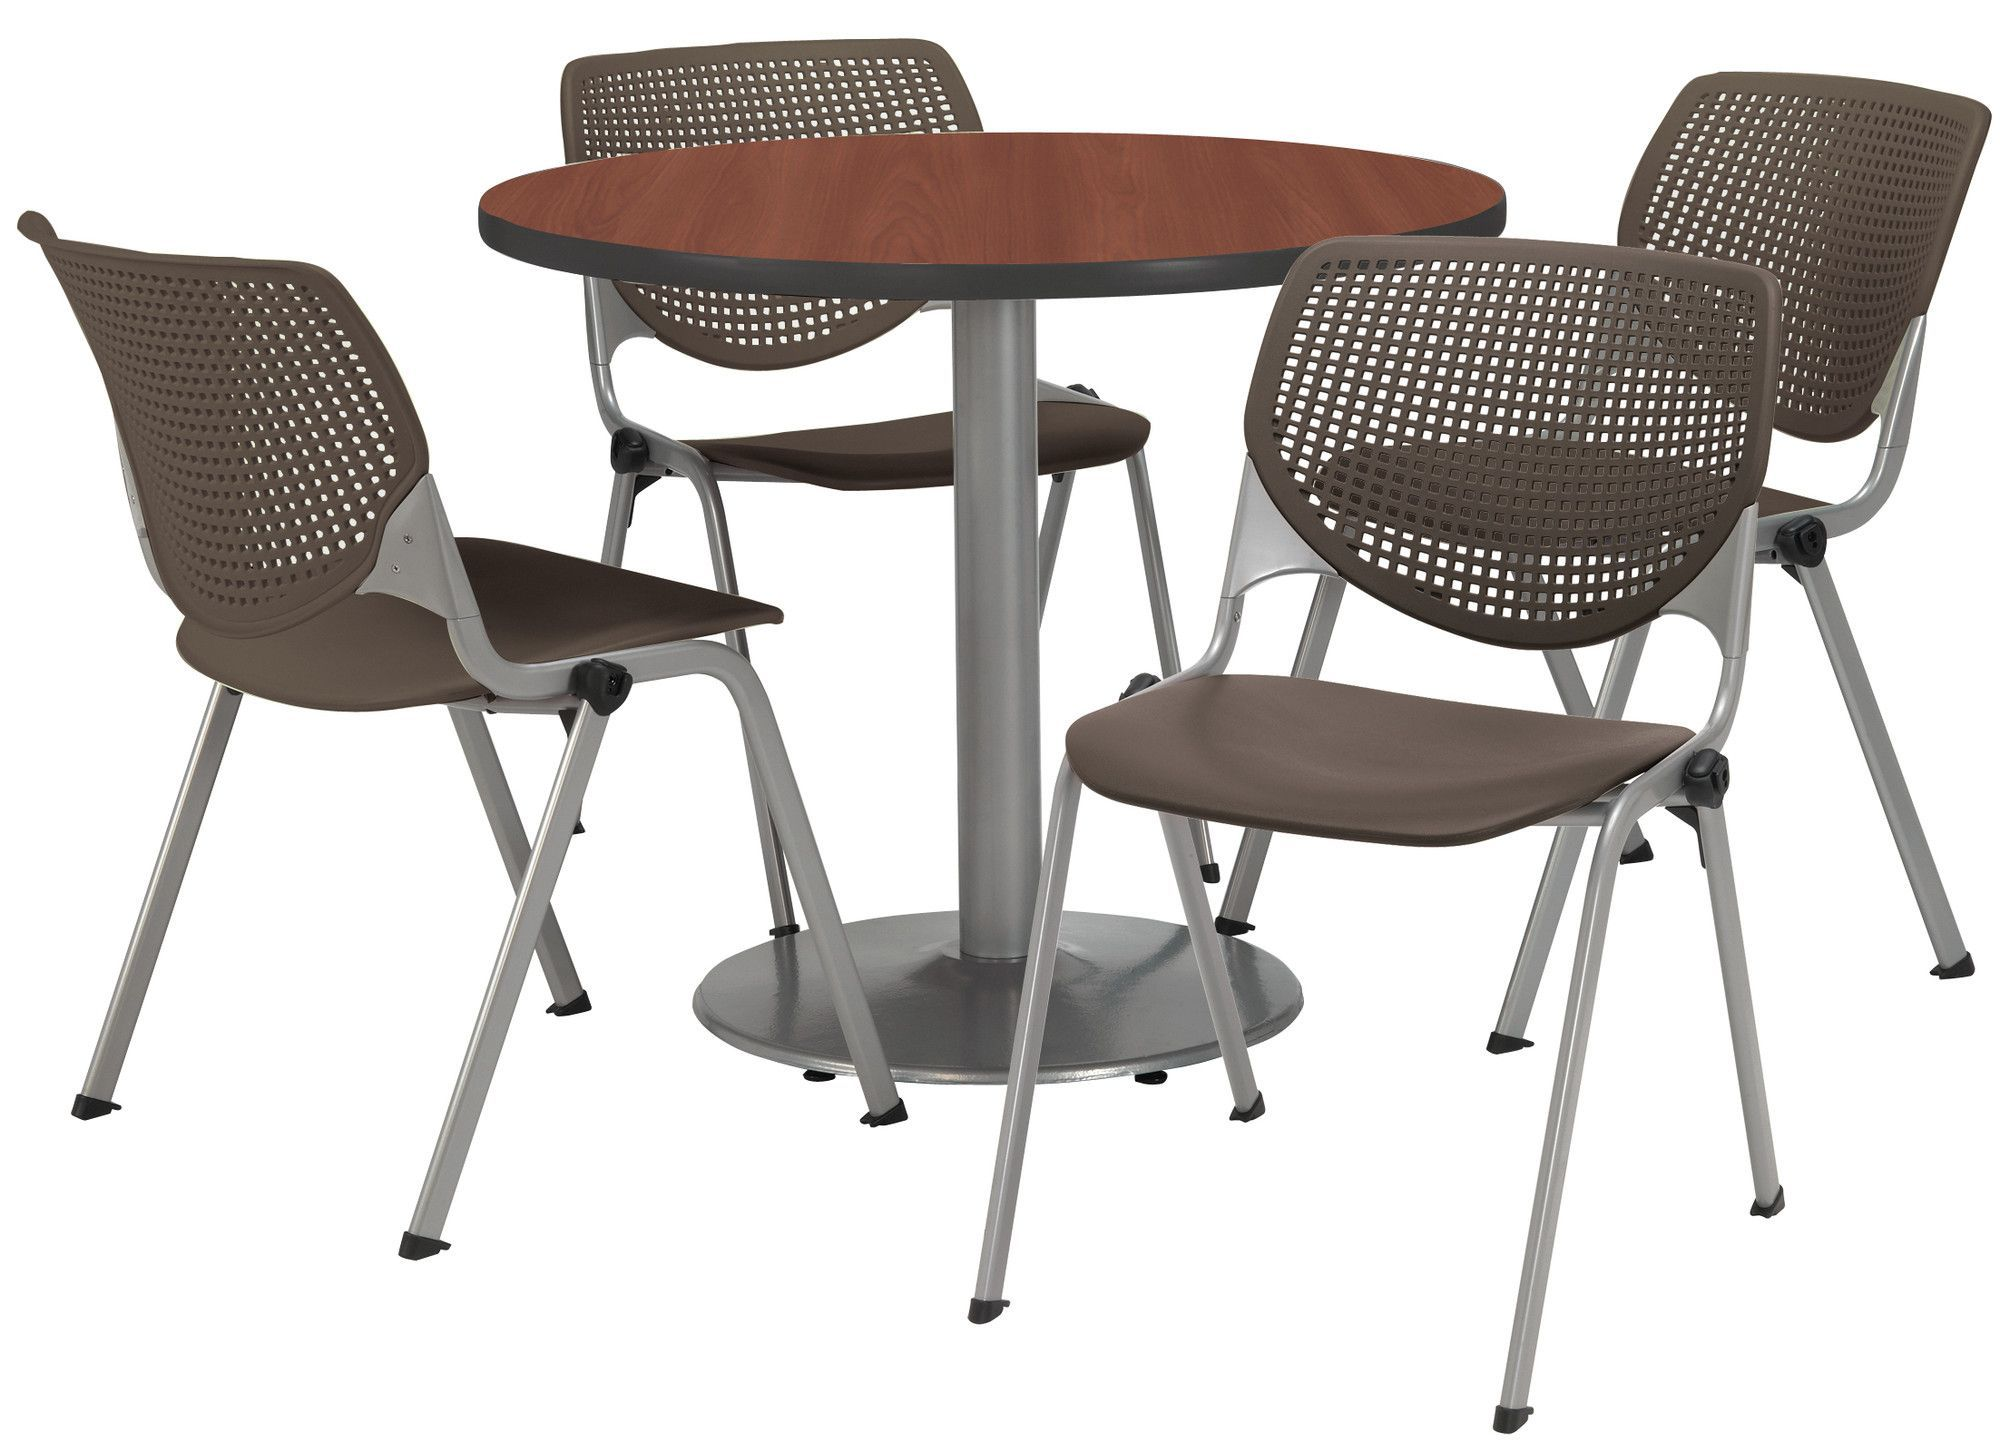 Round Cafeteria Table And Chair Set Dining Table Setting Cafeteria Table Table And Chair Sets